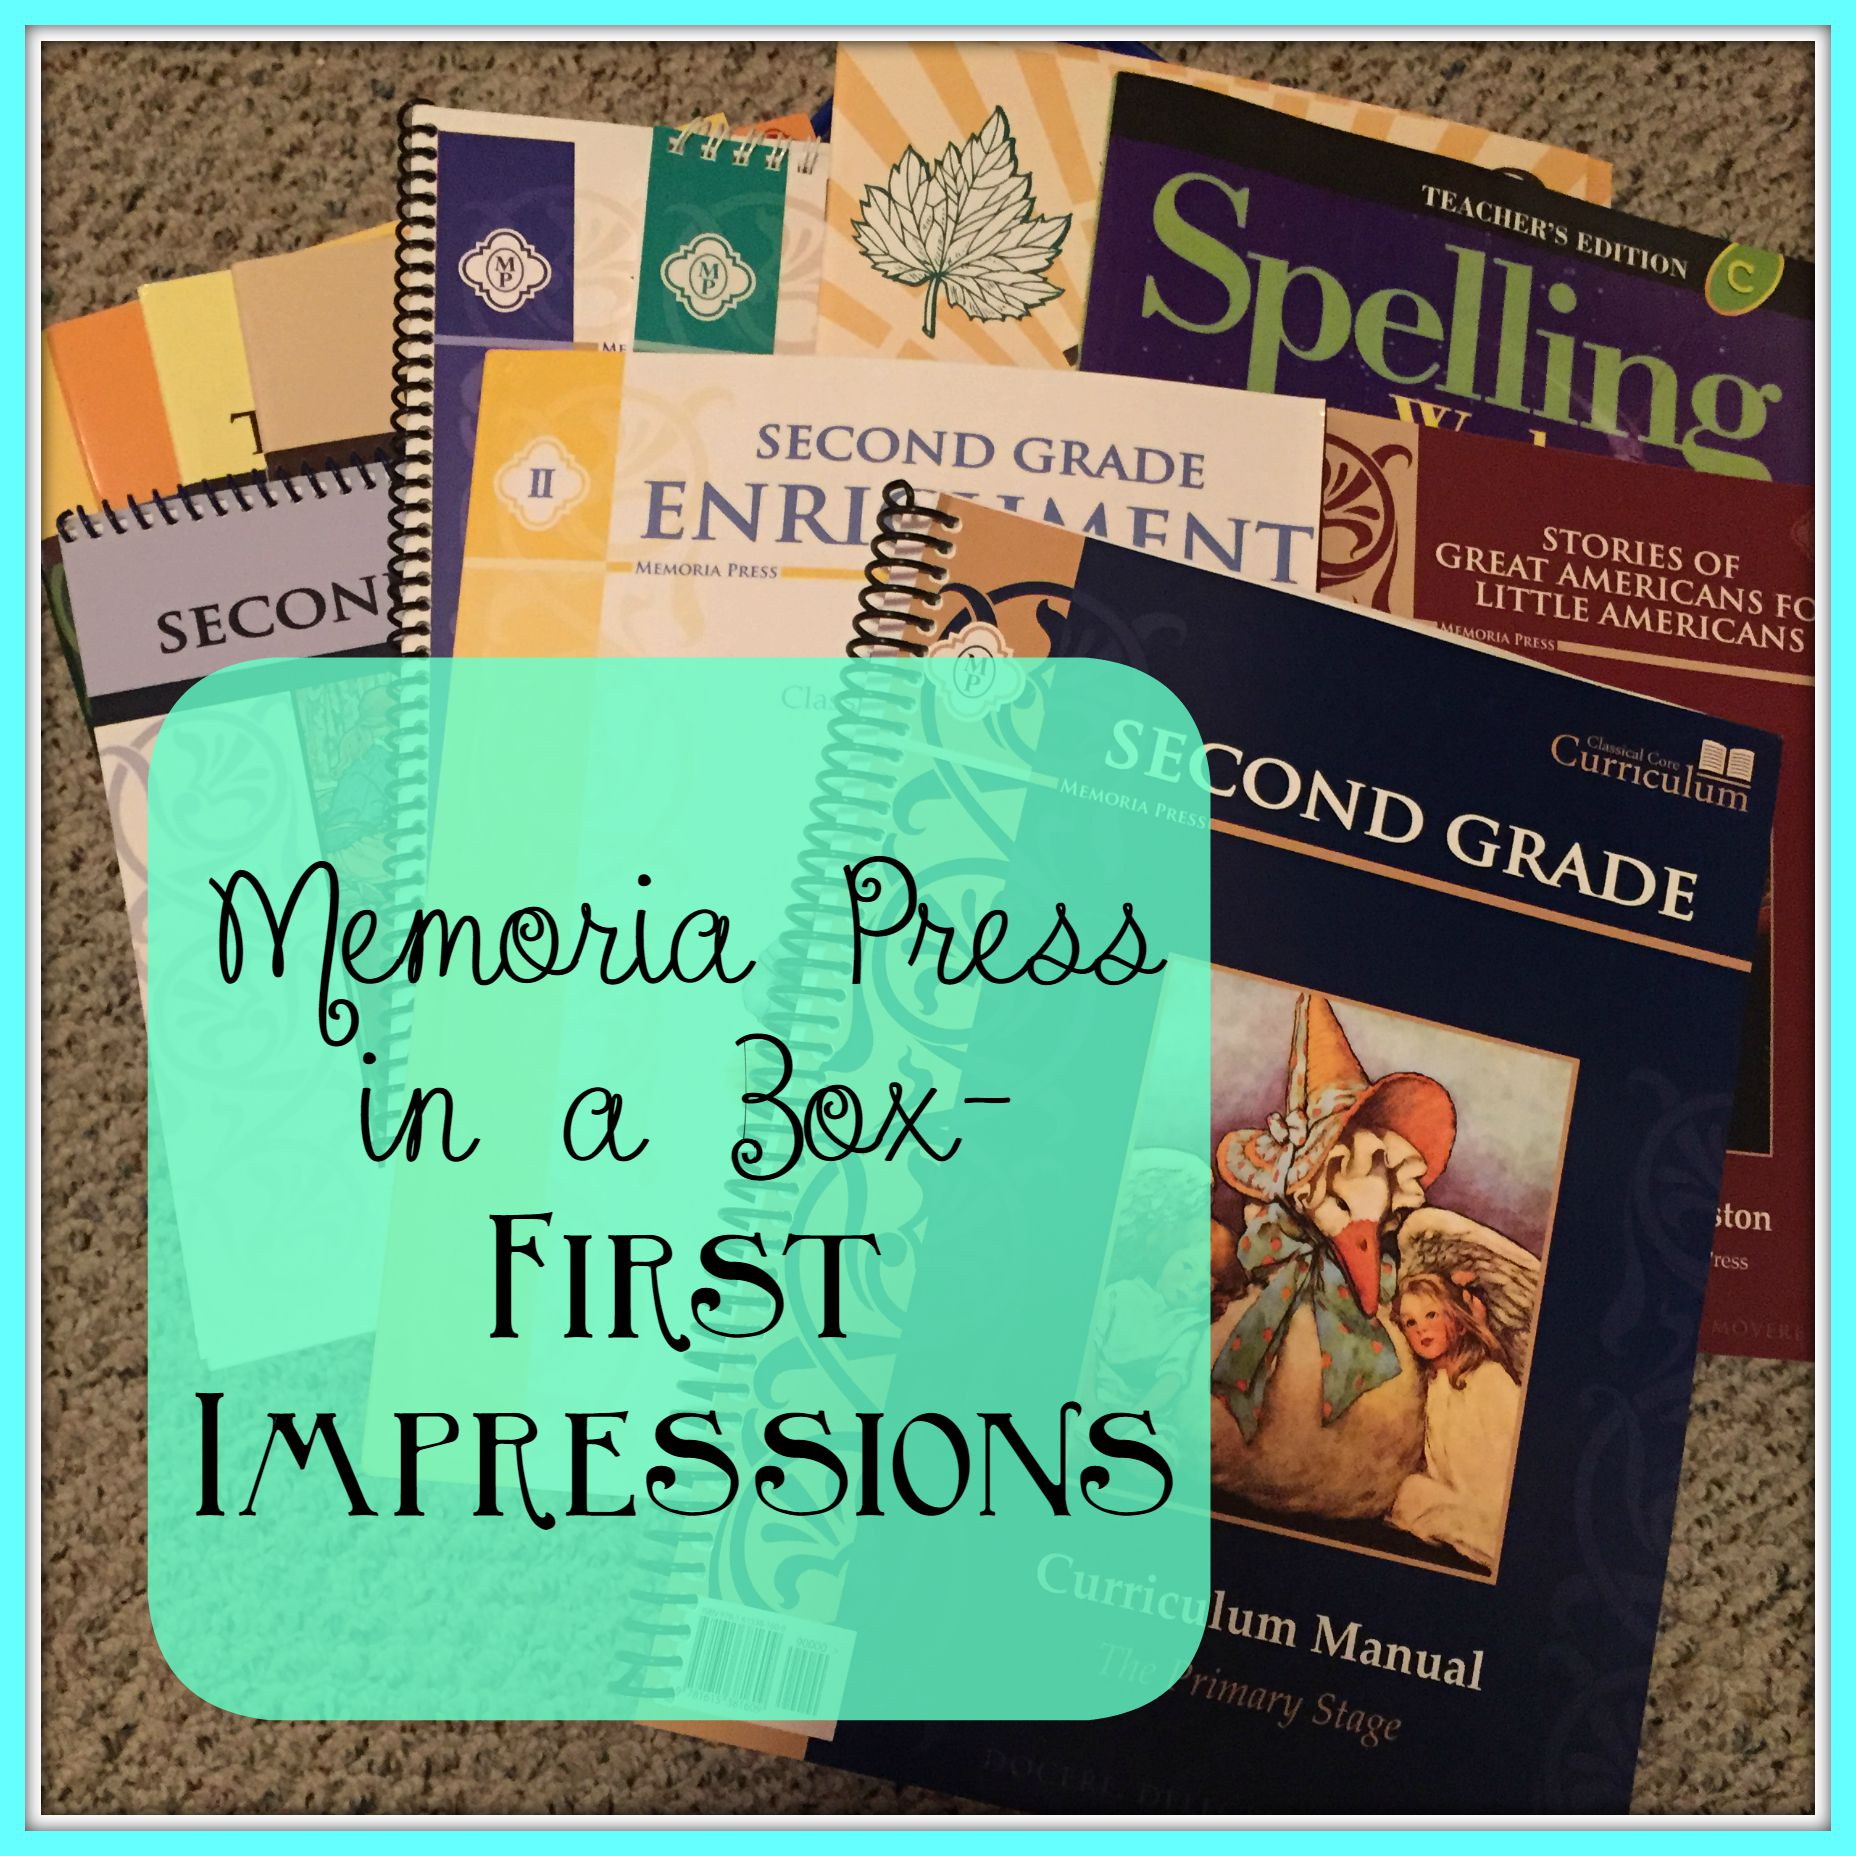 memoria press boxed curriculum impressions - second and kindergarten